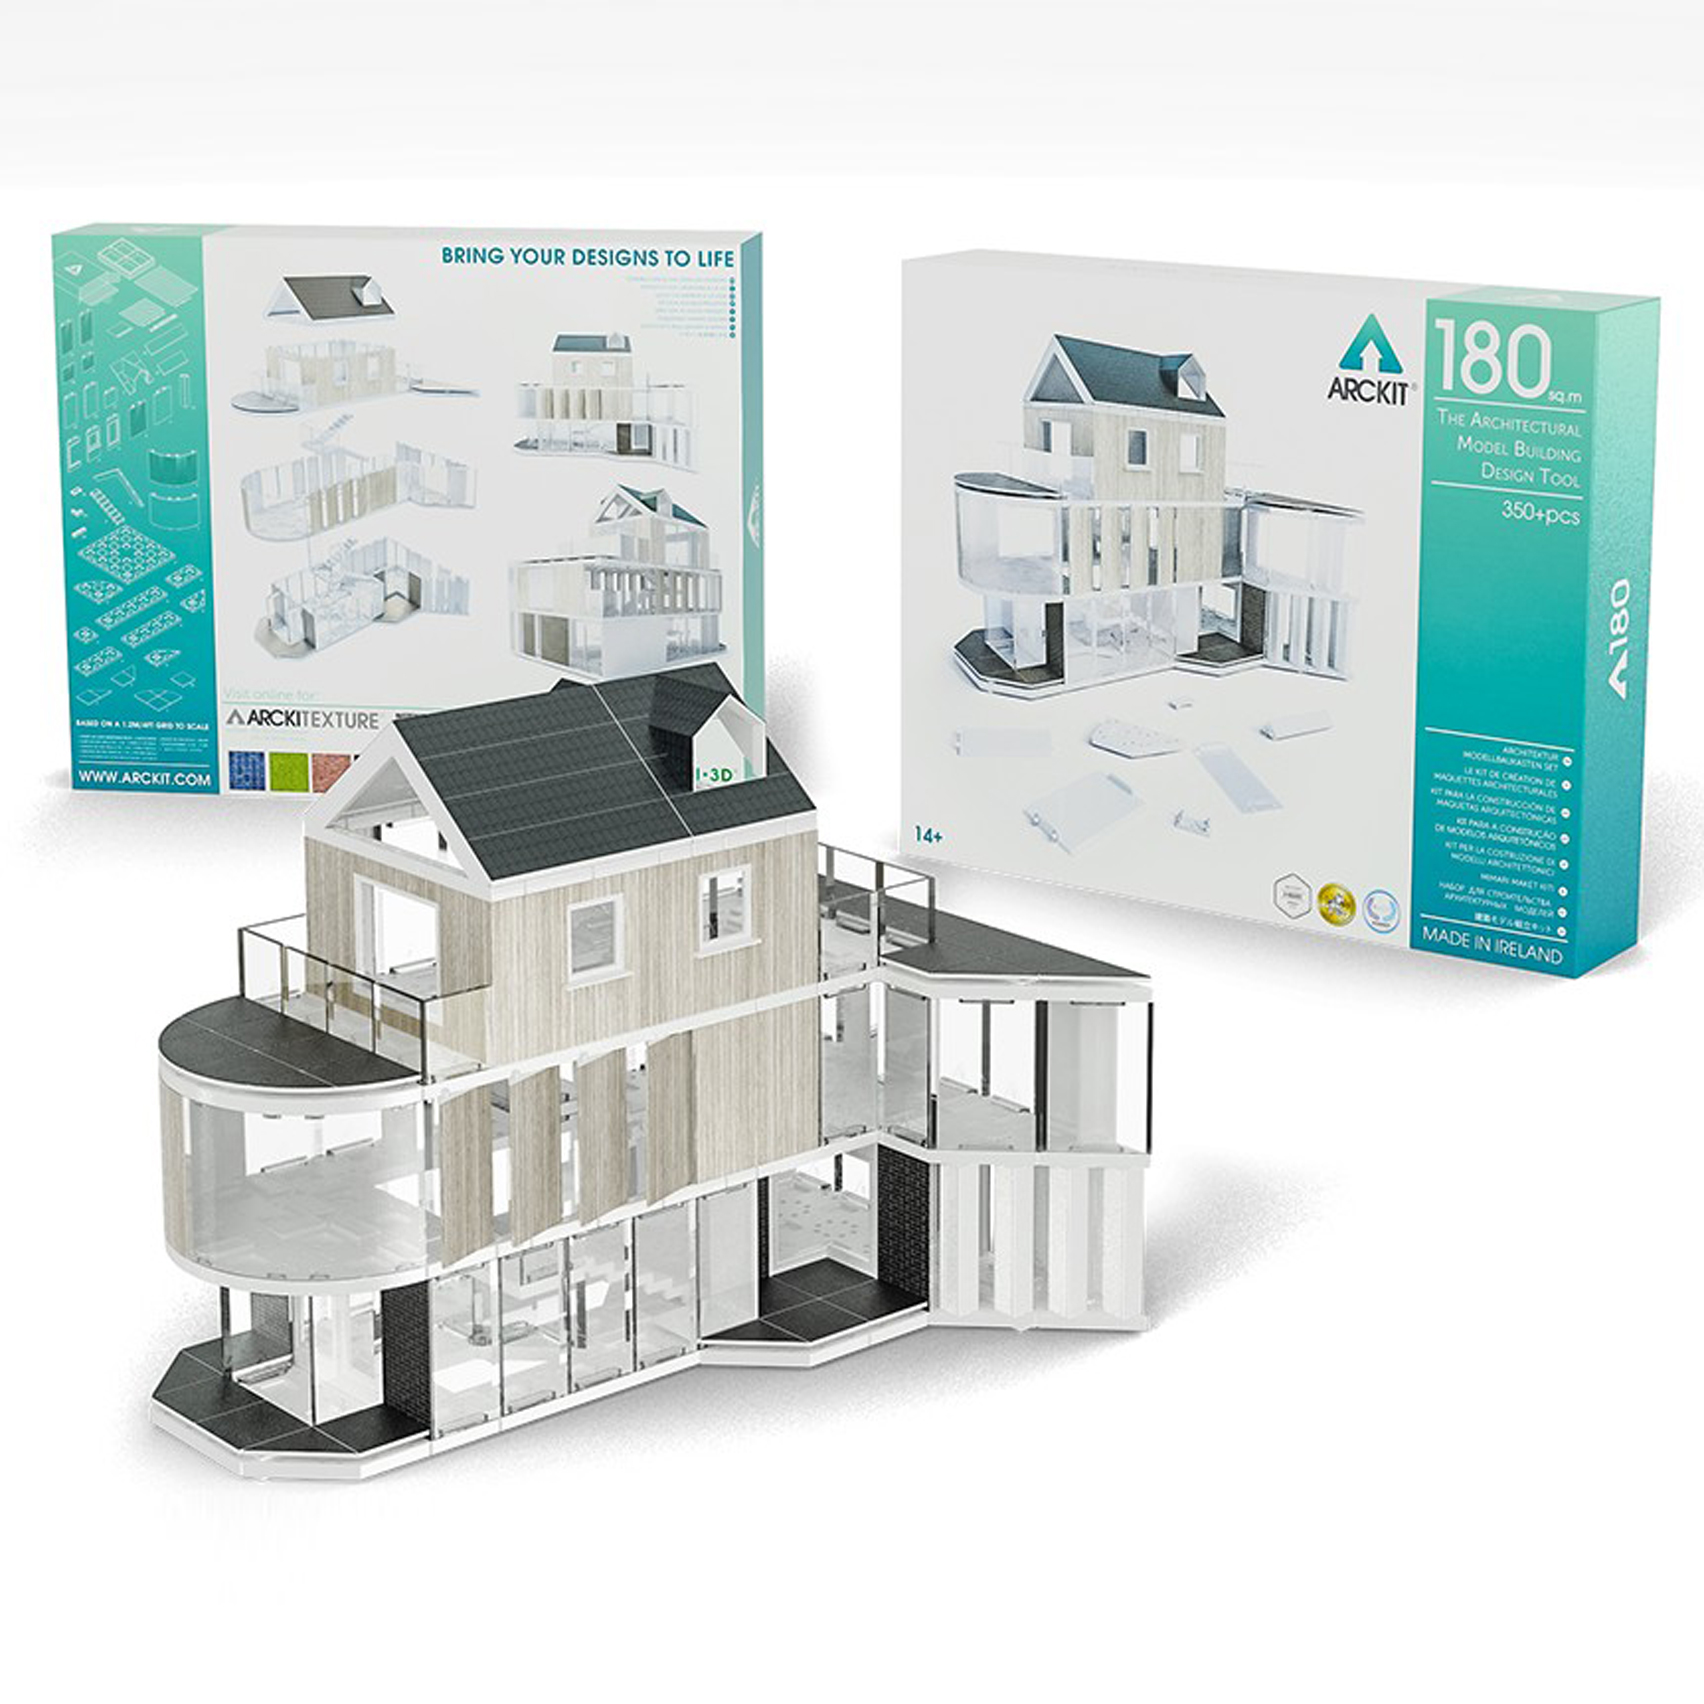 Architectural Model Kits Easy To Assemble Building Kits Aim To Inspire New